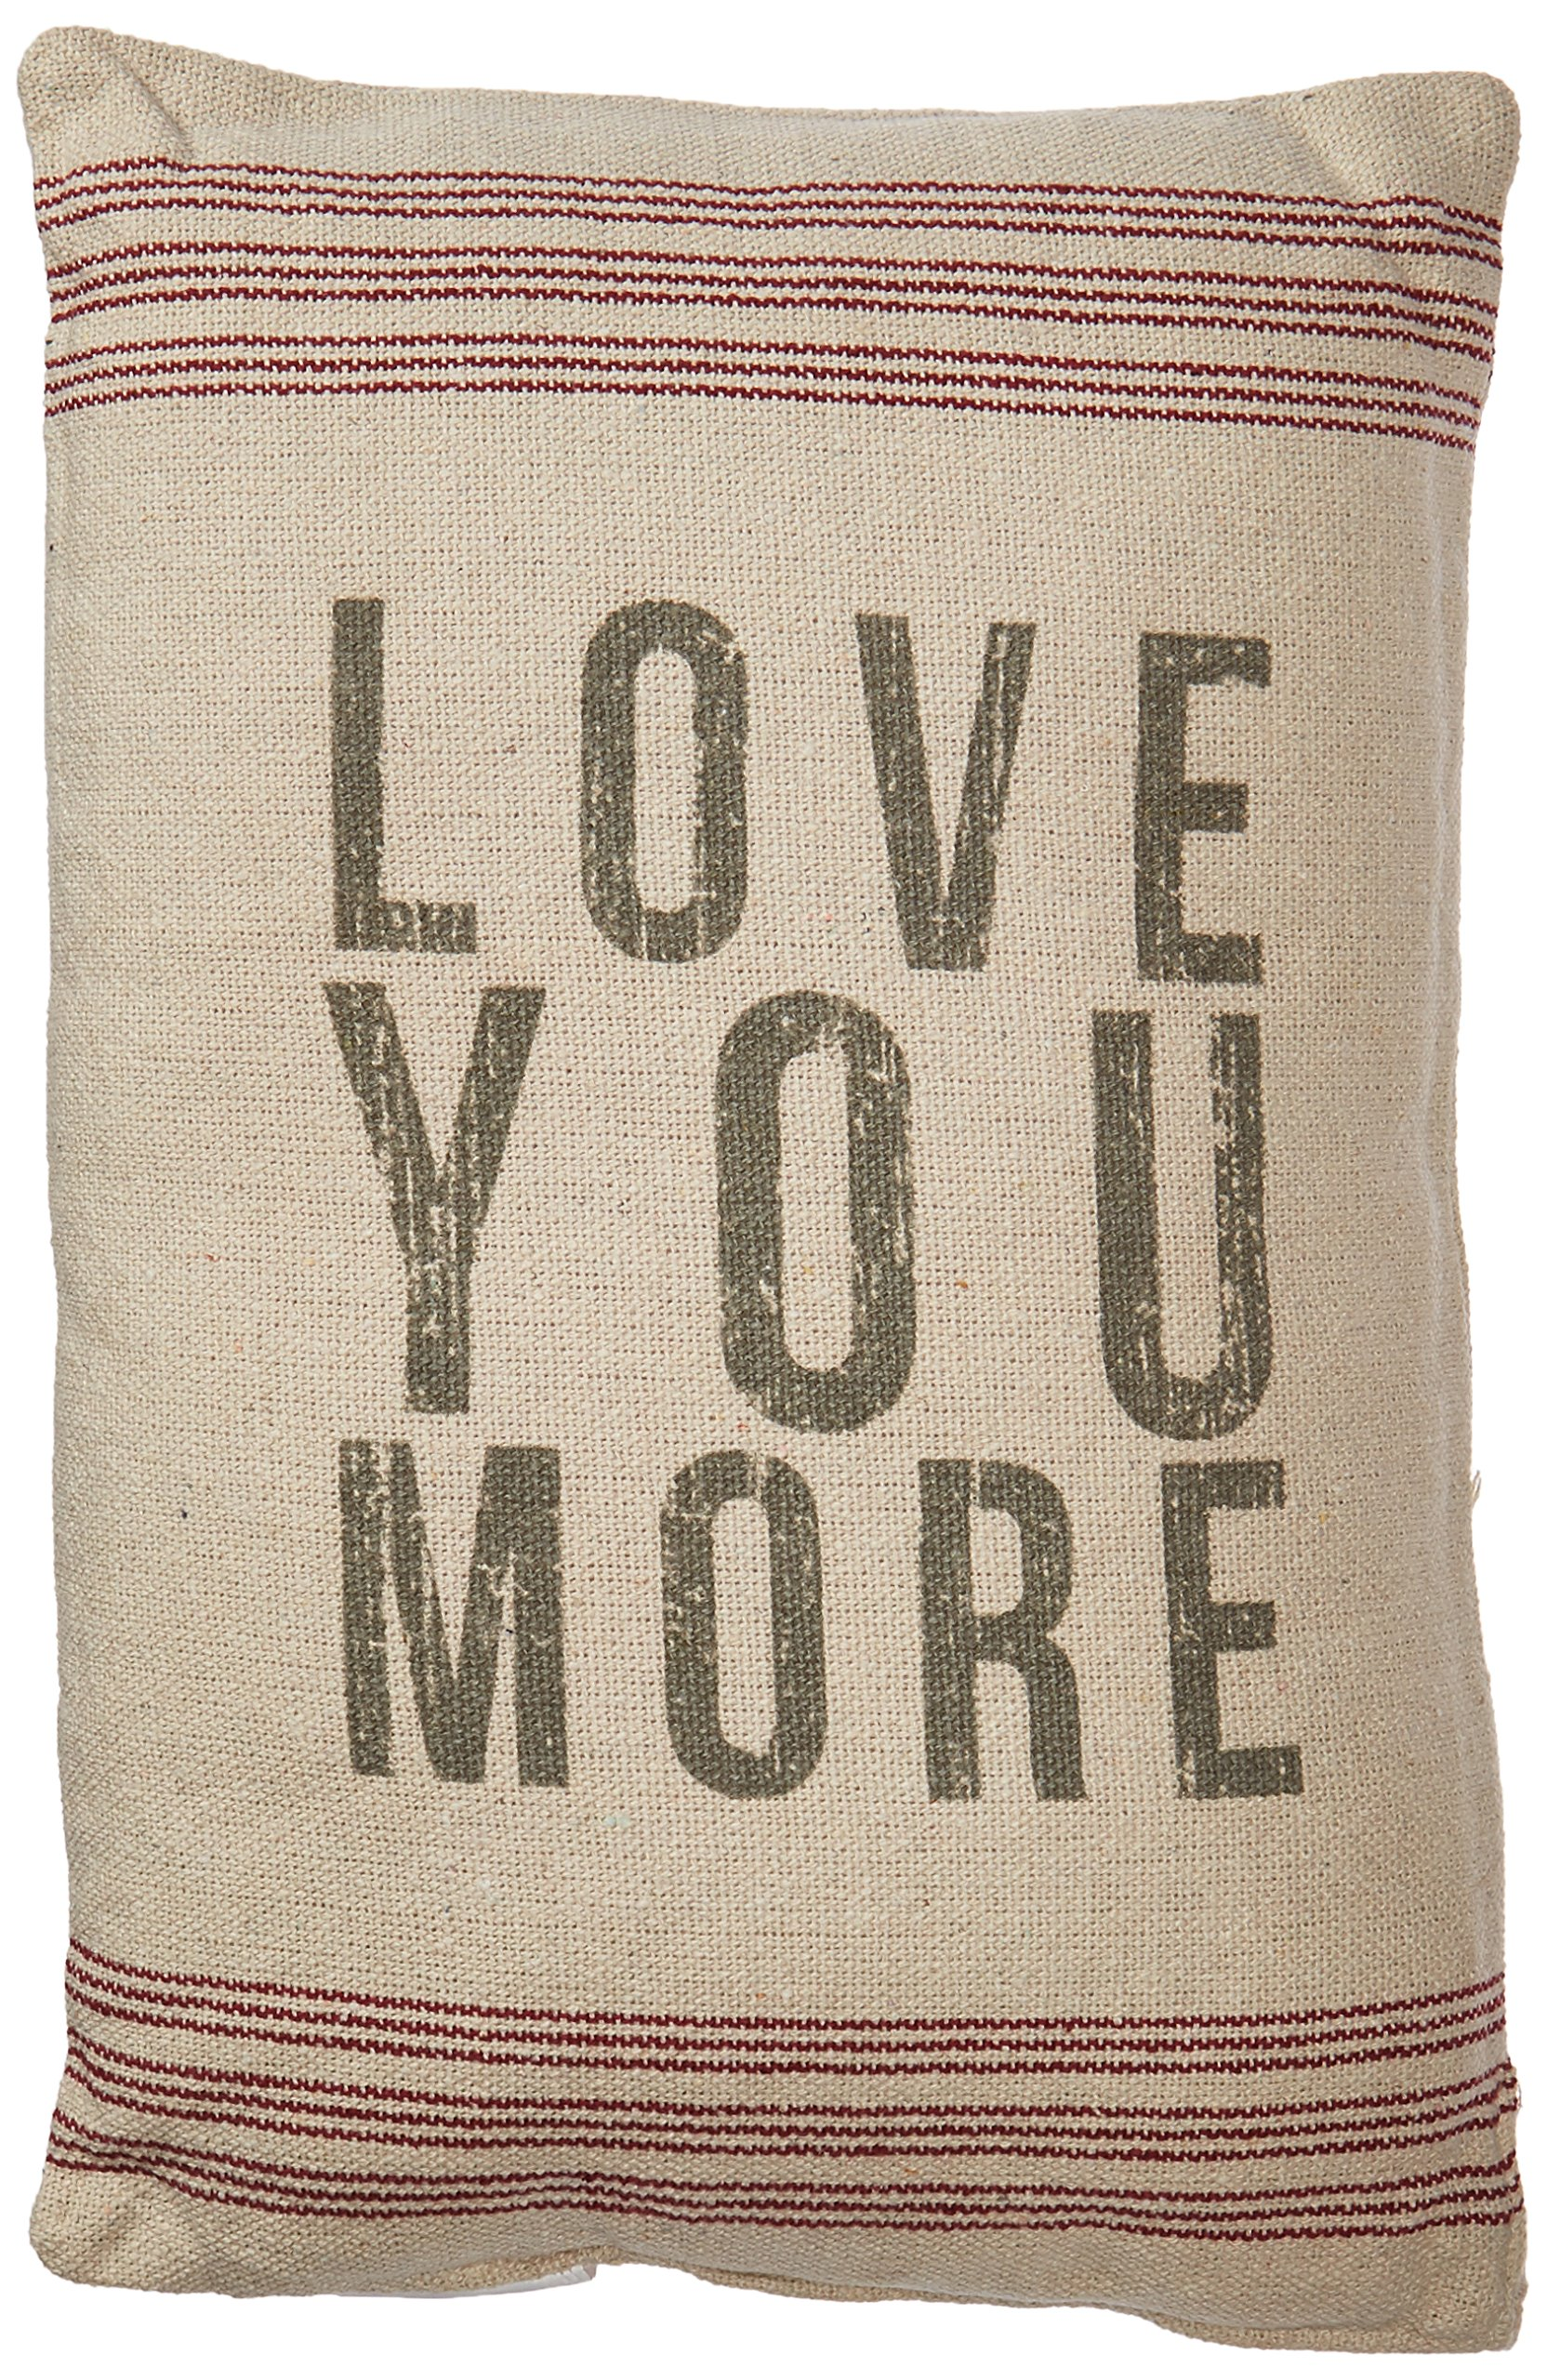 Primitives by Kathy 18293 Striped Pillow, 10'' x 15.5'', Love You More